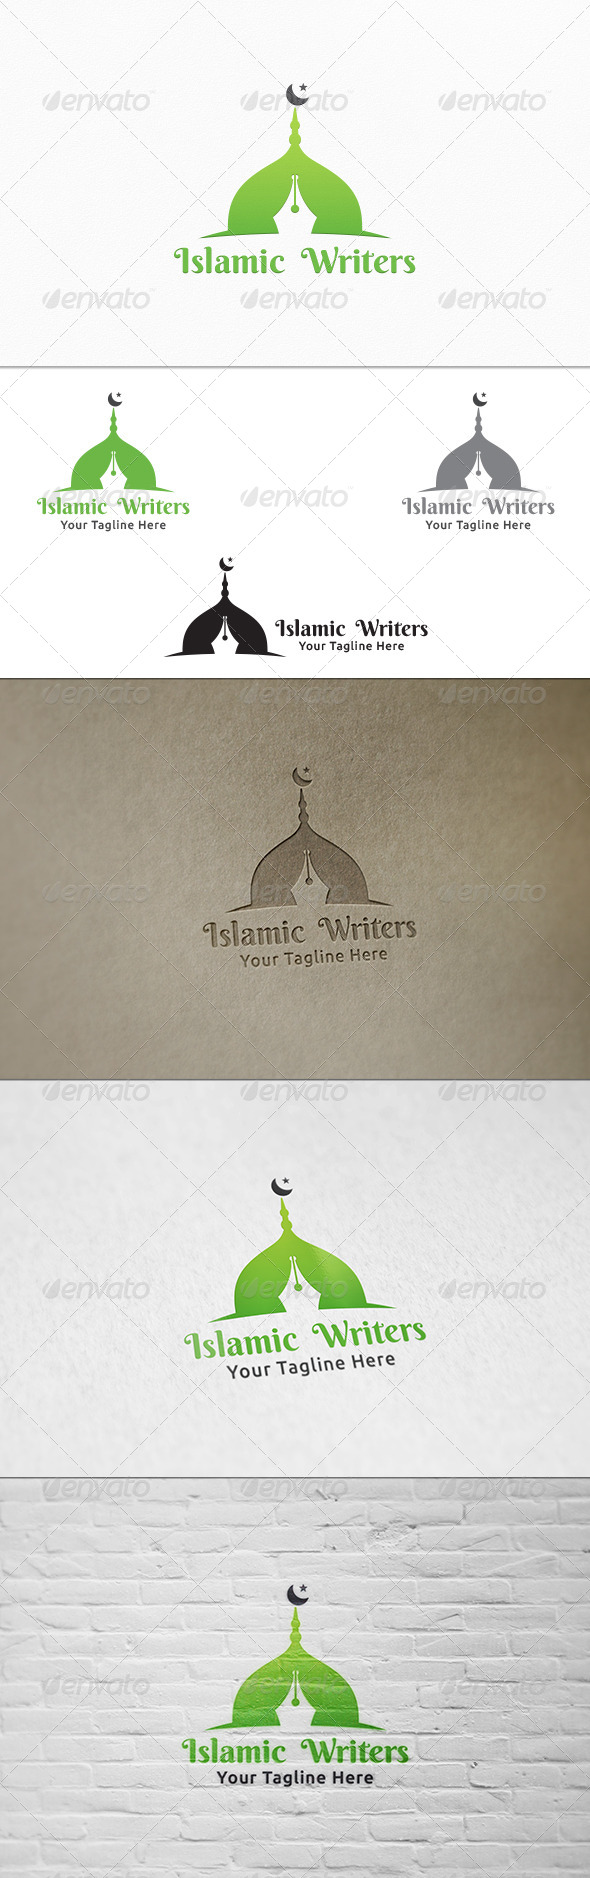 GraphicRiver Islamic Writers Logo Template 8319013